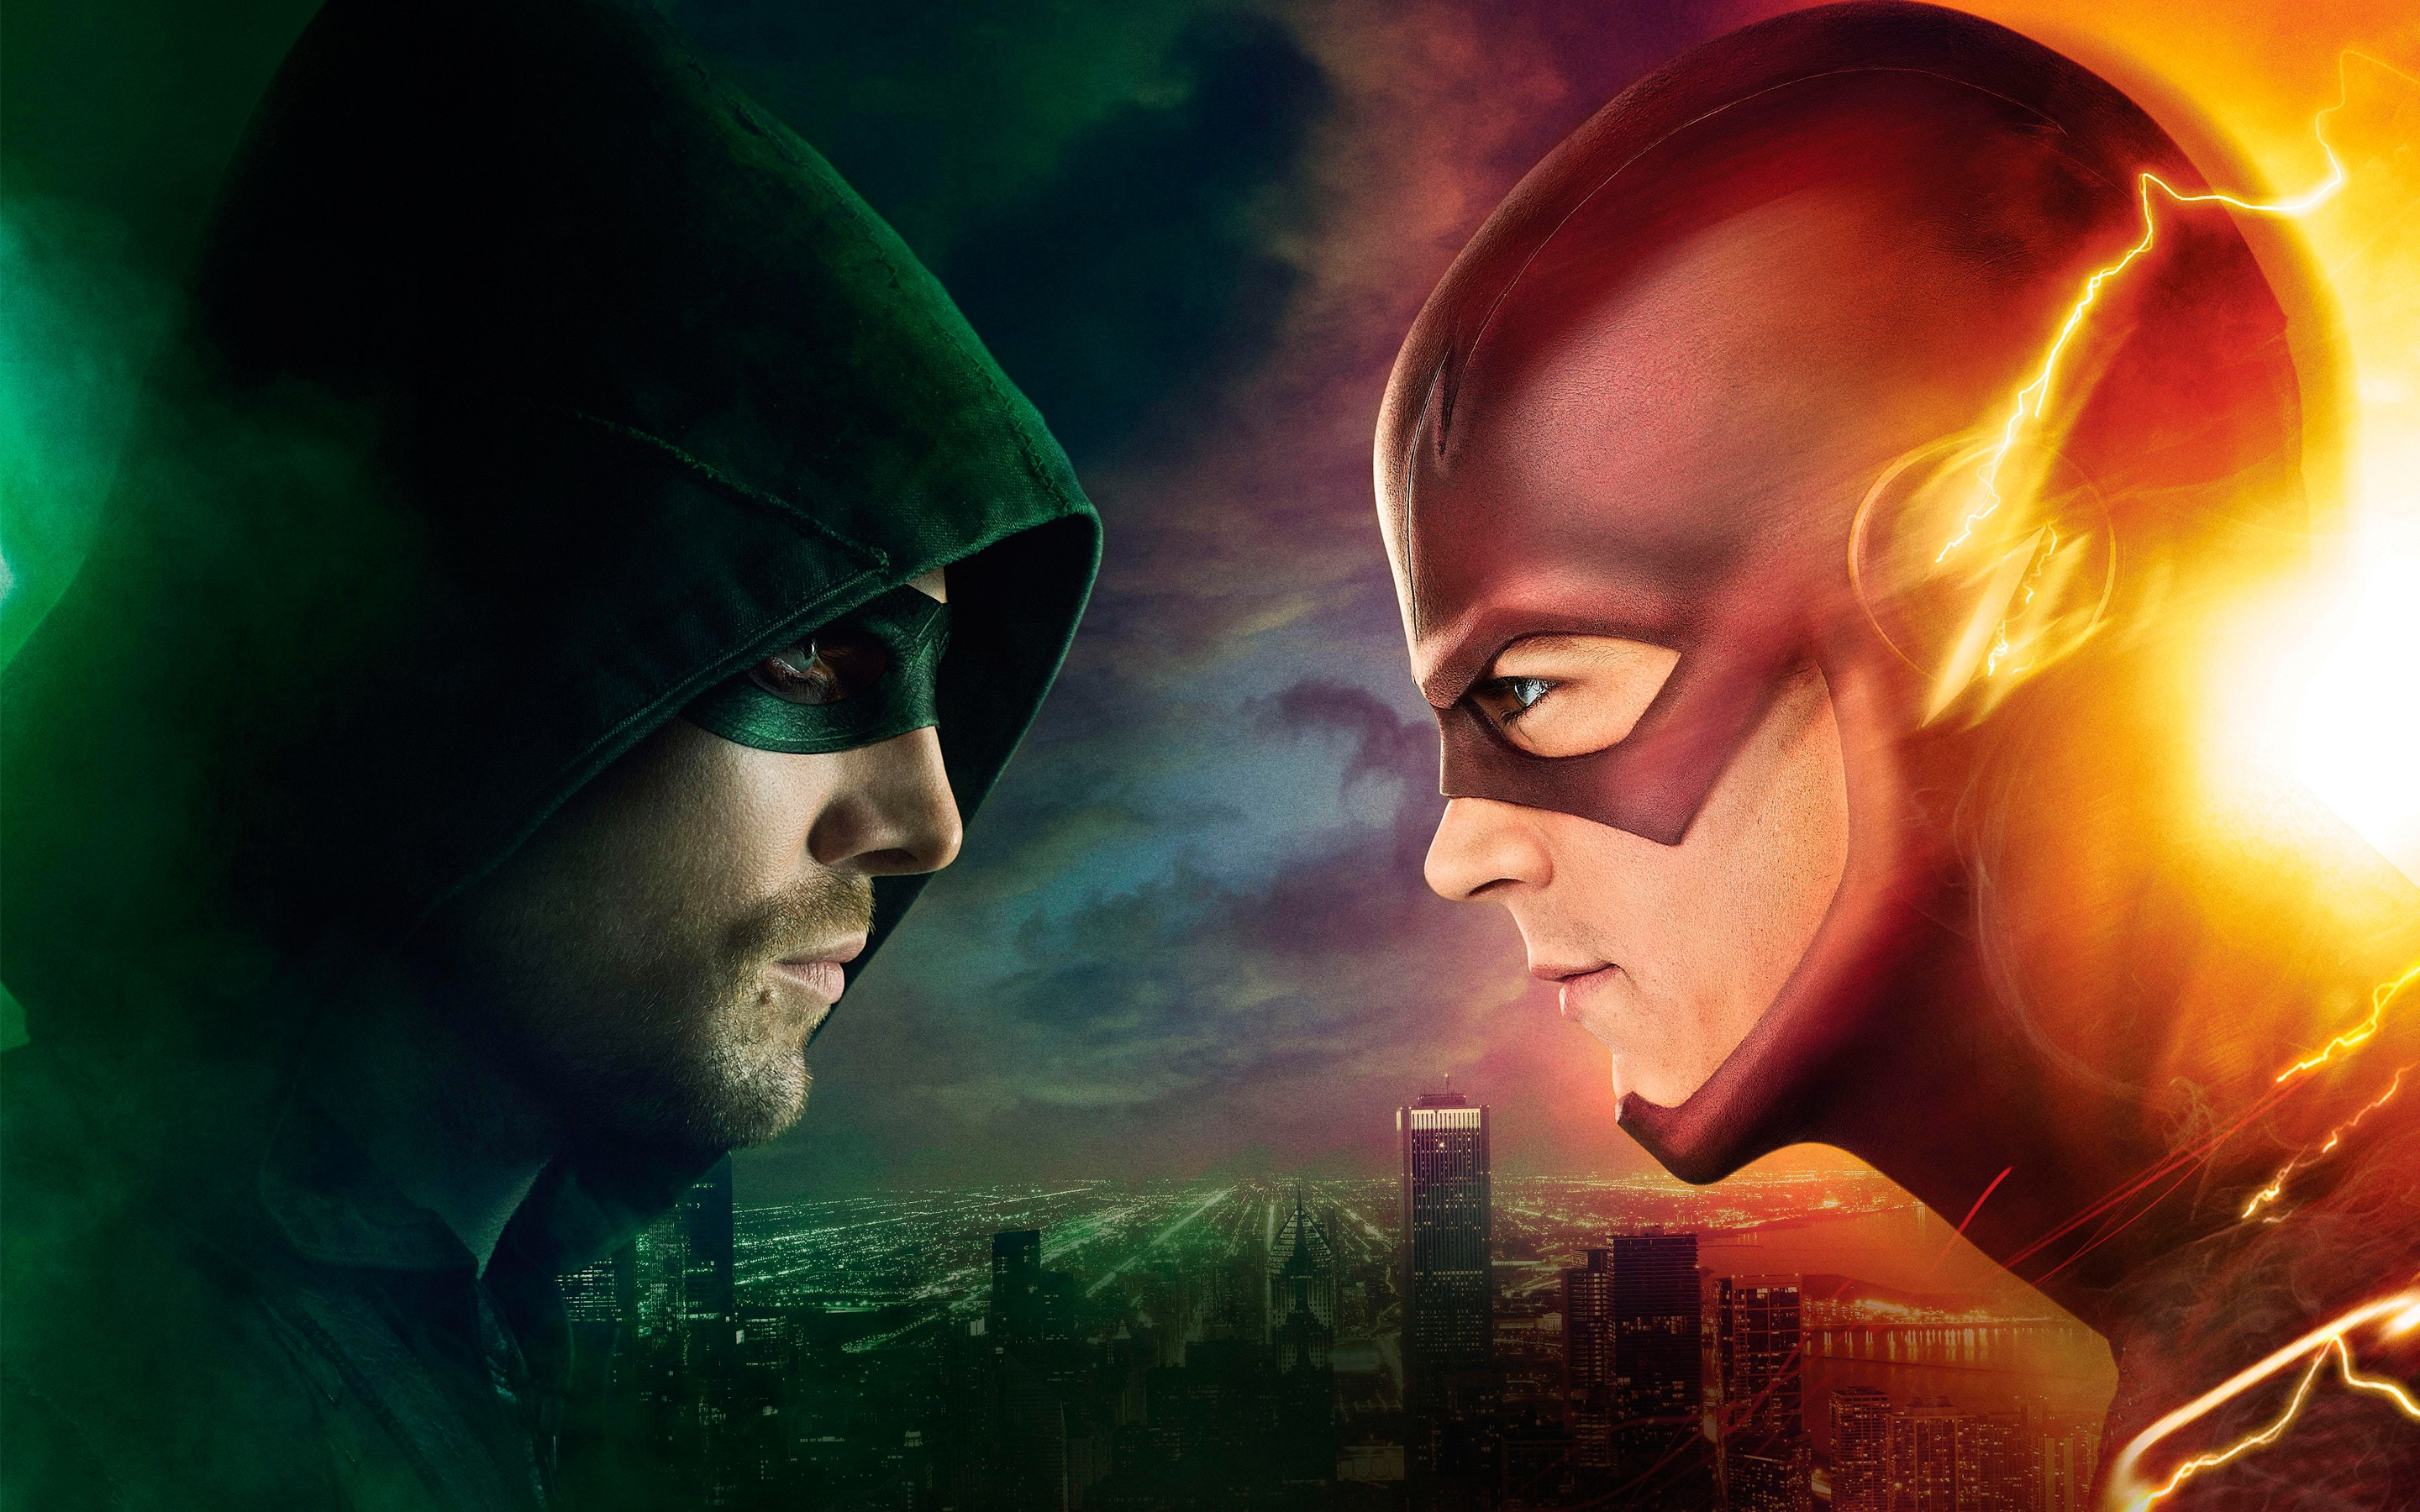 Flash vs arrow hd tv shows 4k wallpapers images - Tv series wallpaper 4k ...